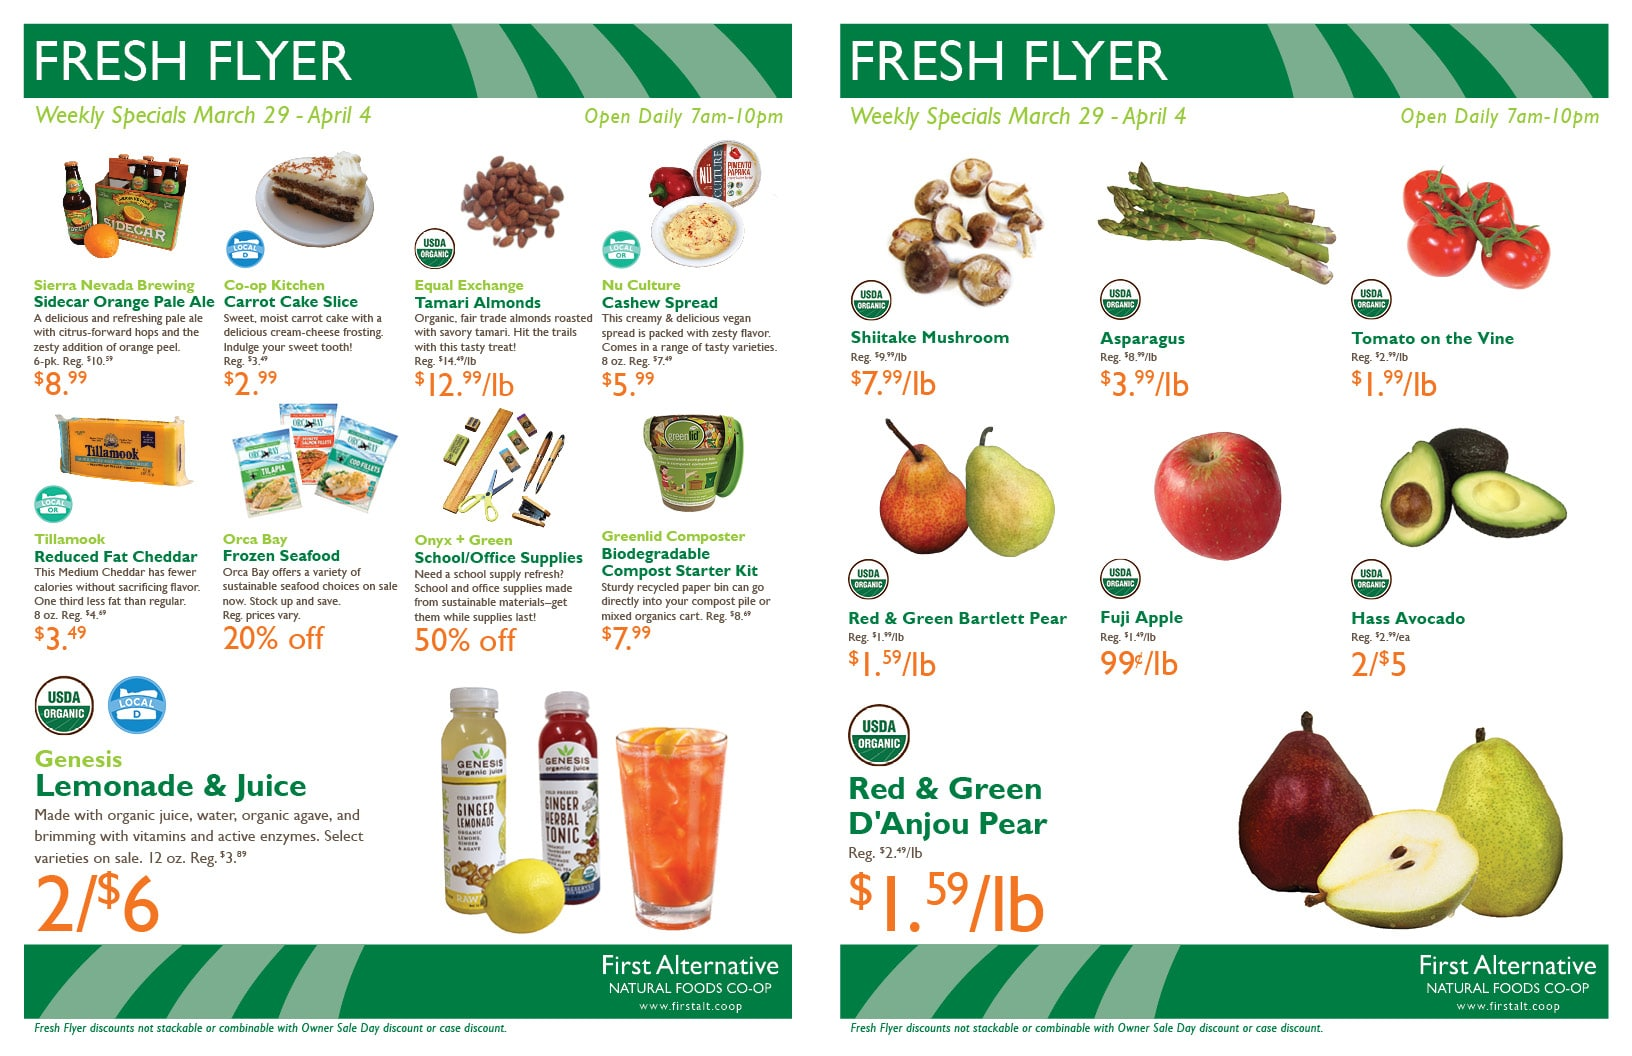 First Alternative Co-op Fresh Flyer Mar. 29-Apr. 4